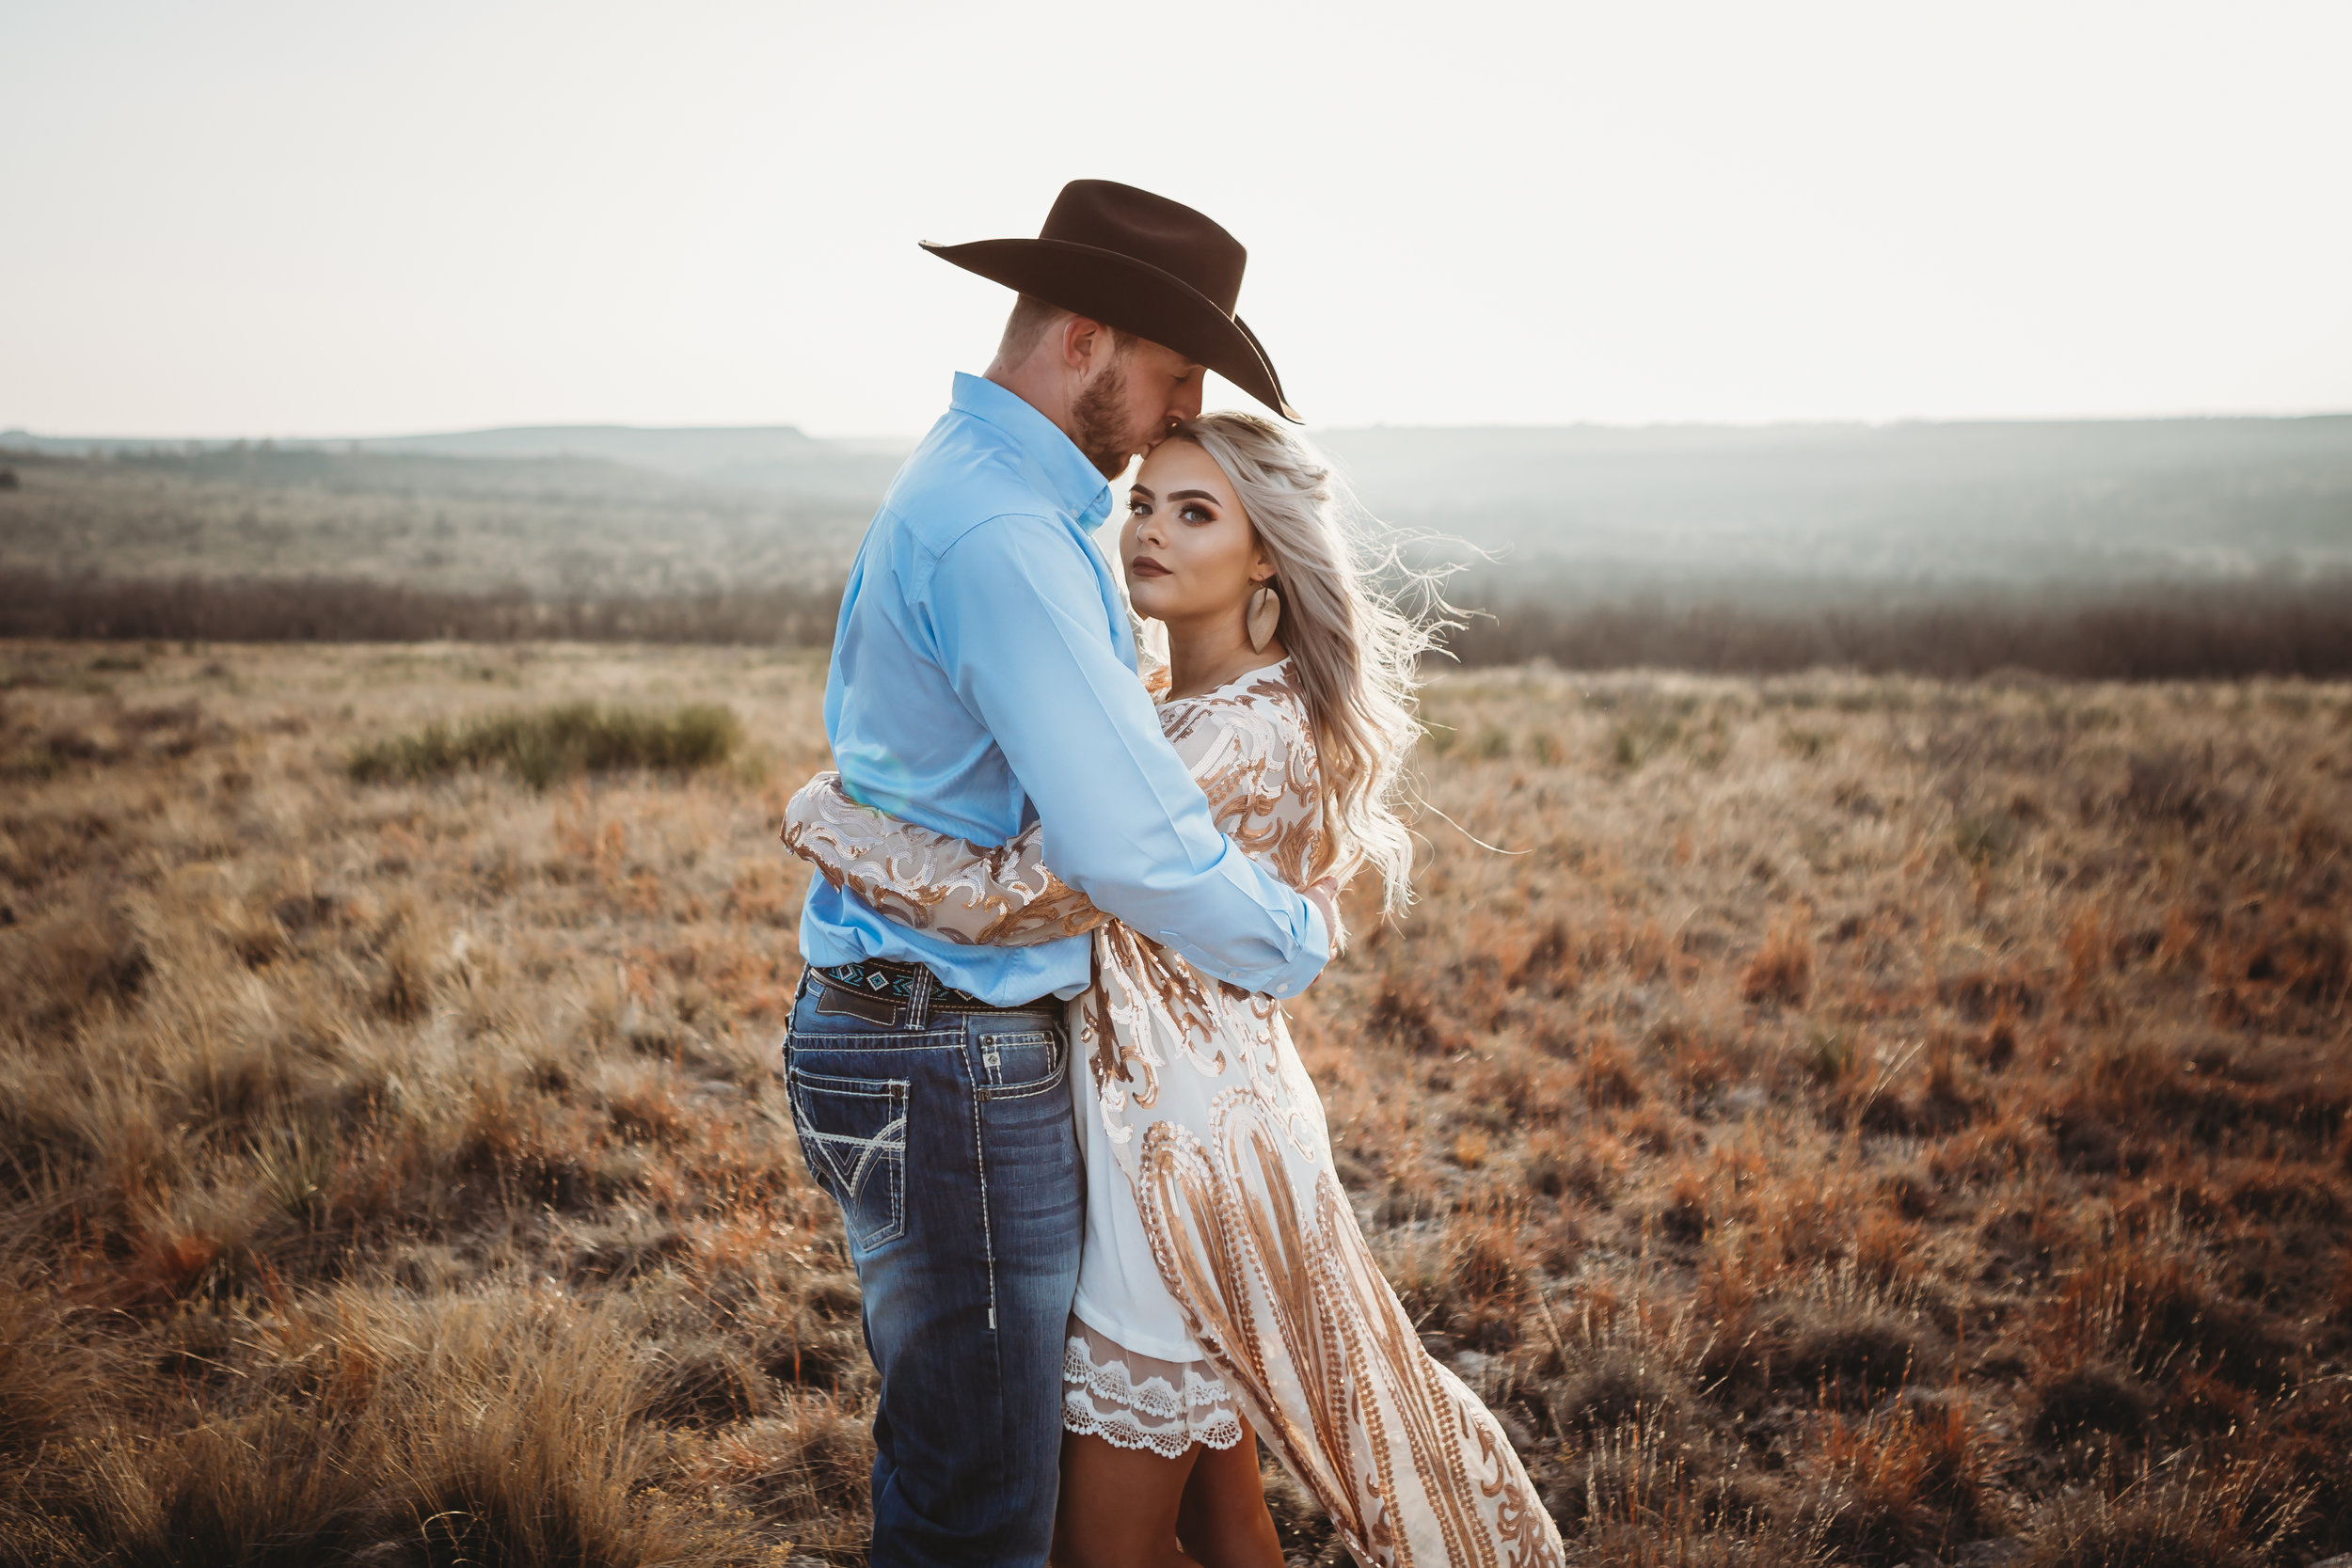 Profile of bride to be and groom to be kissing her on the forehead in the sun set #engagementphotos #engaged #personality #amarillotexas #engagementphotographer #lifestylephotos #amarillophotographer #locationchoice #texasengagementphotos #engagment #tealawardphotography #westernstyle